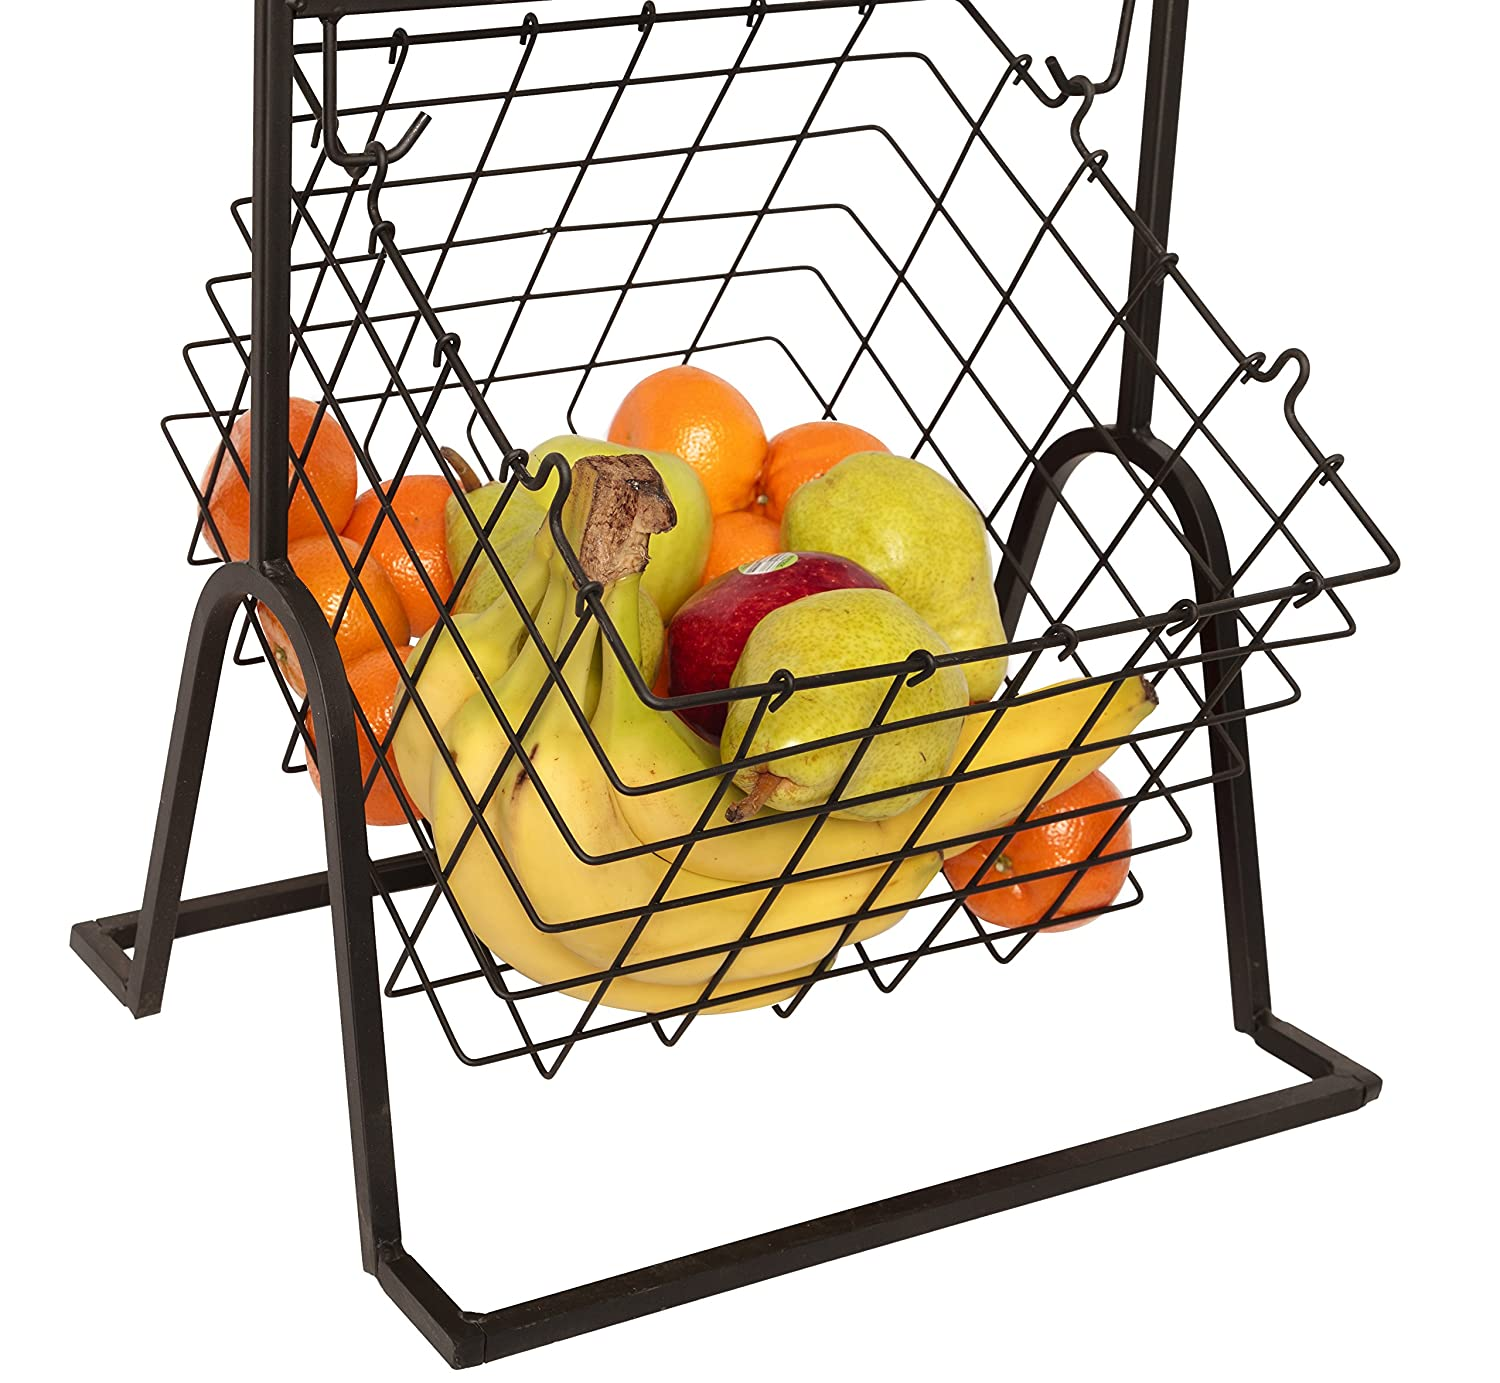 Amazon.com - JMiles UH-MB263 Three Tier Market Basket for Fruits and ...